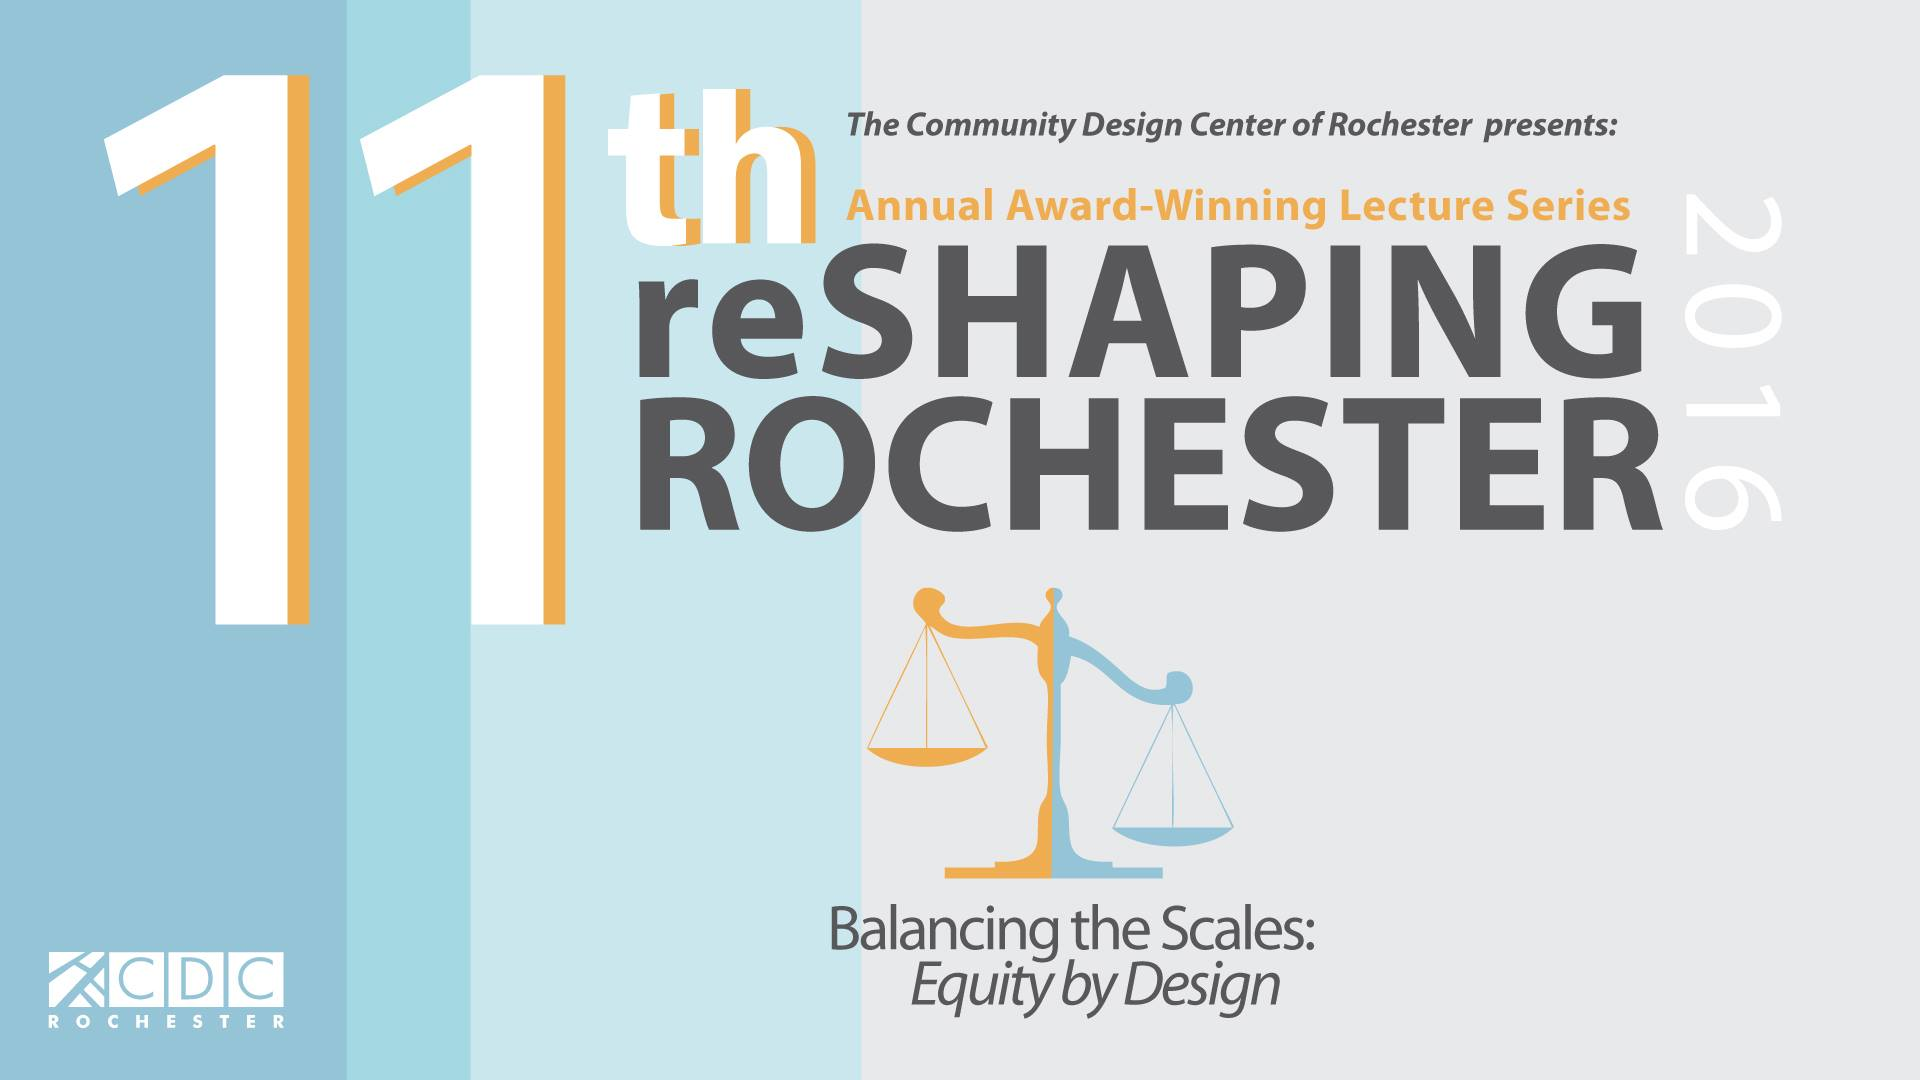 Come to the next Reshaping Rochester lecture on March 10 to hear Arizona State Senator Steve Farley and Jacky Grimshaw from the Center for Neighborhood Technology (CNT) talk about how better transit and land use can address both poverty and dollars wasted transporting ourselves across our sprawled region.